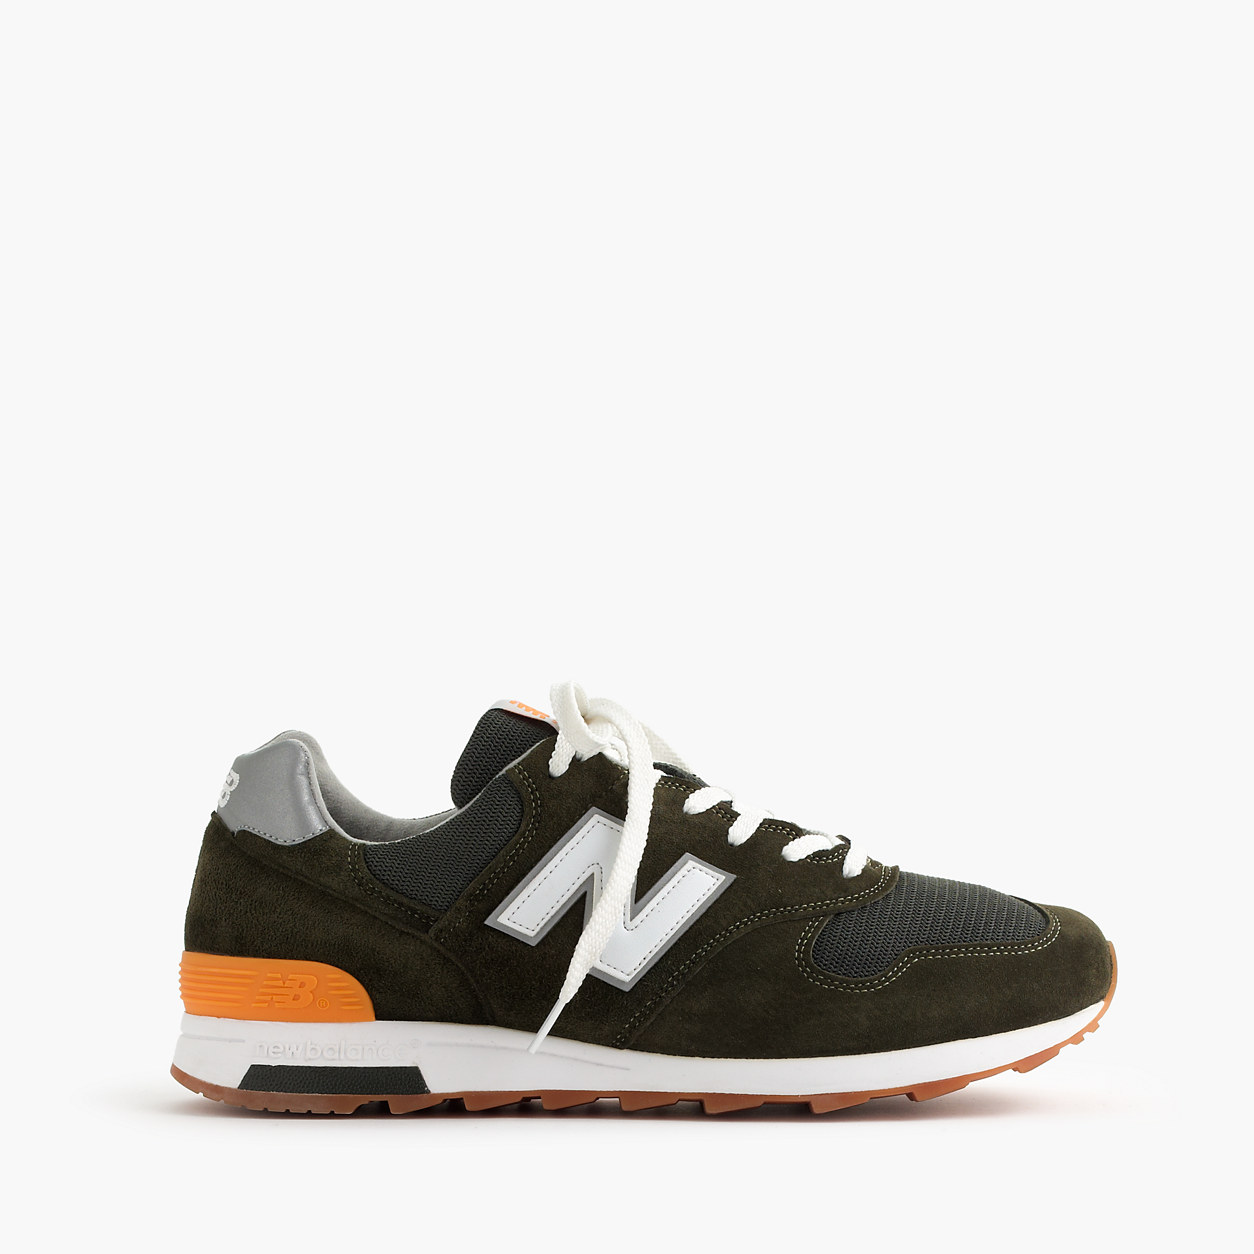 New Balance for J.Crew Unisex Sneakers